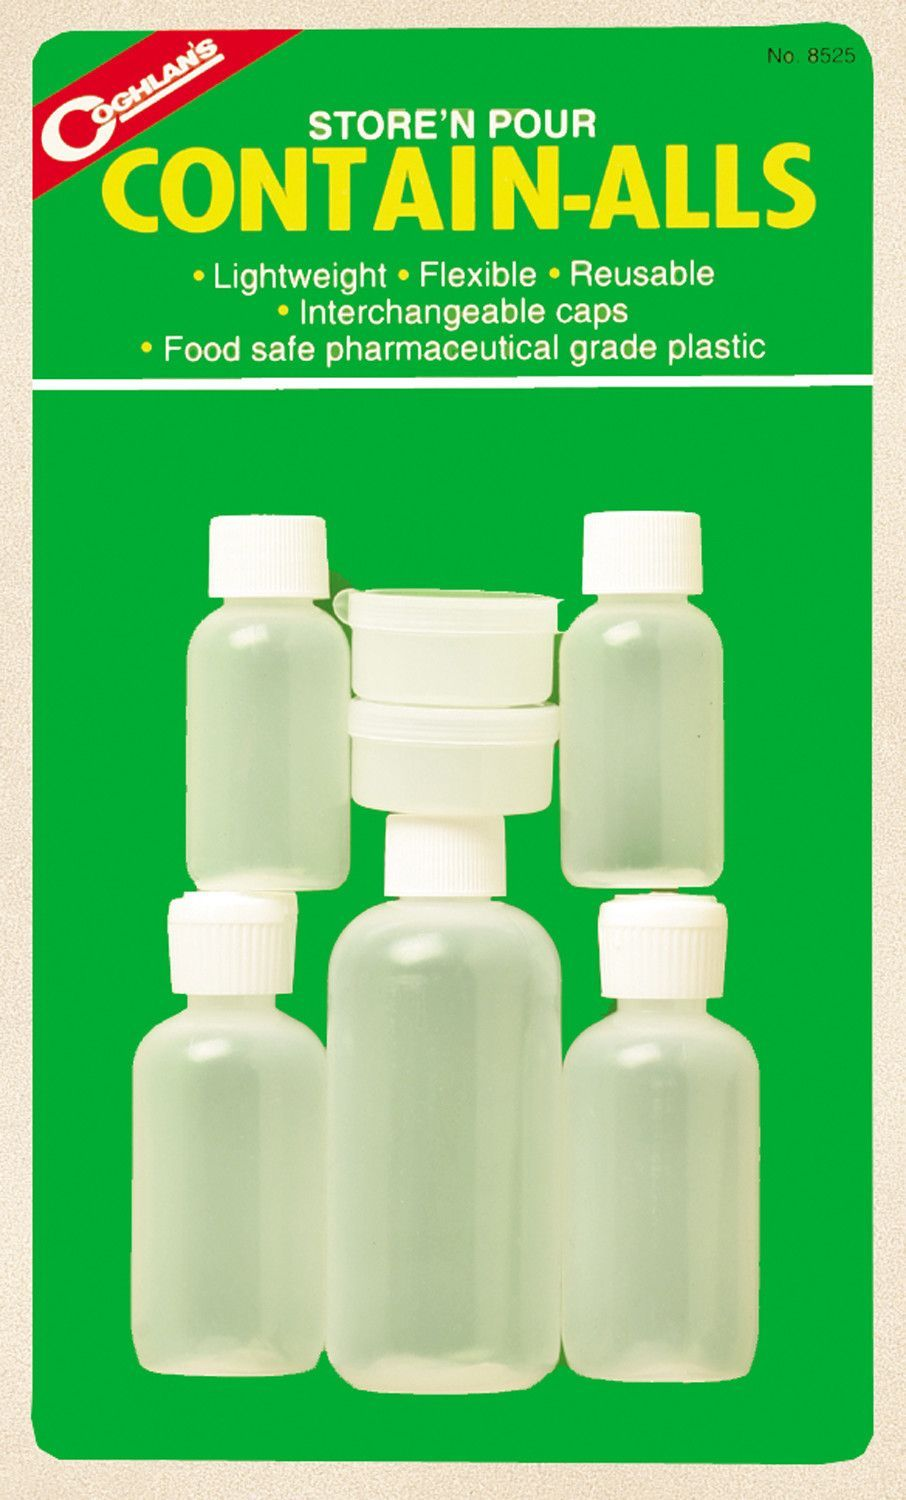 Store and Pour Contain-Alls Plastic Containers